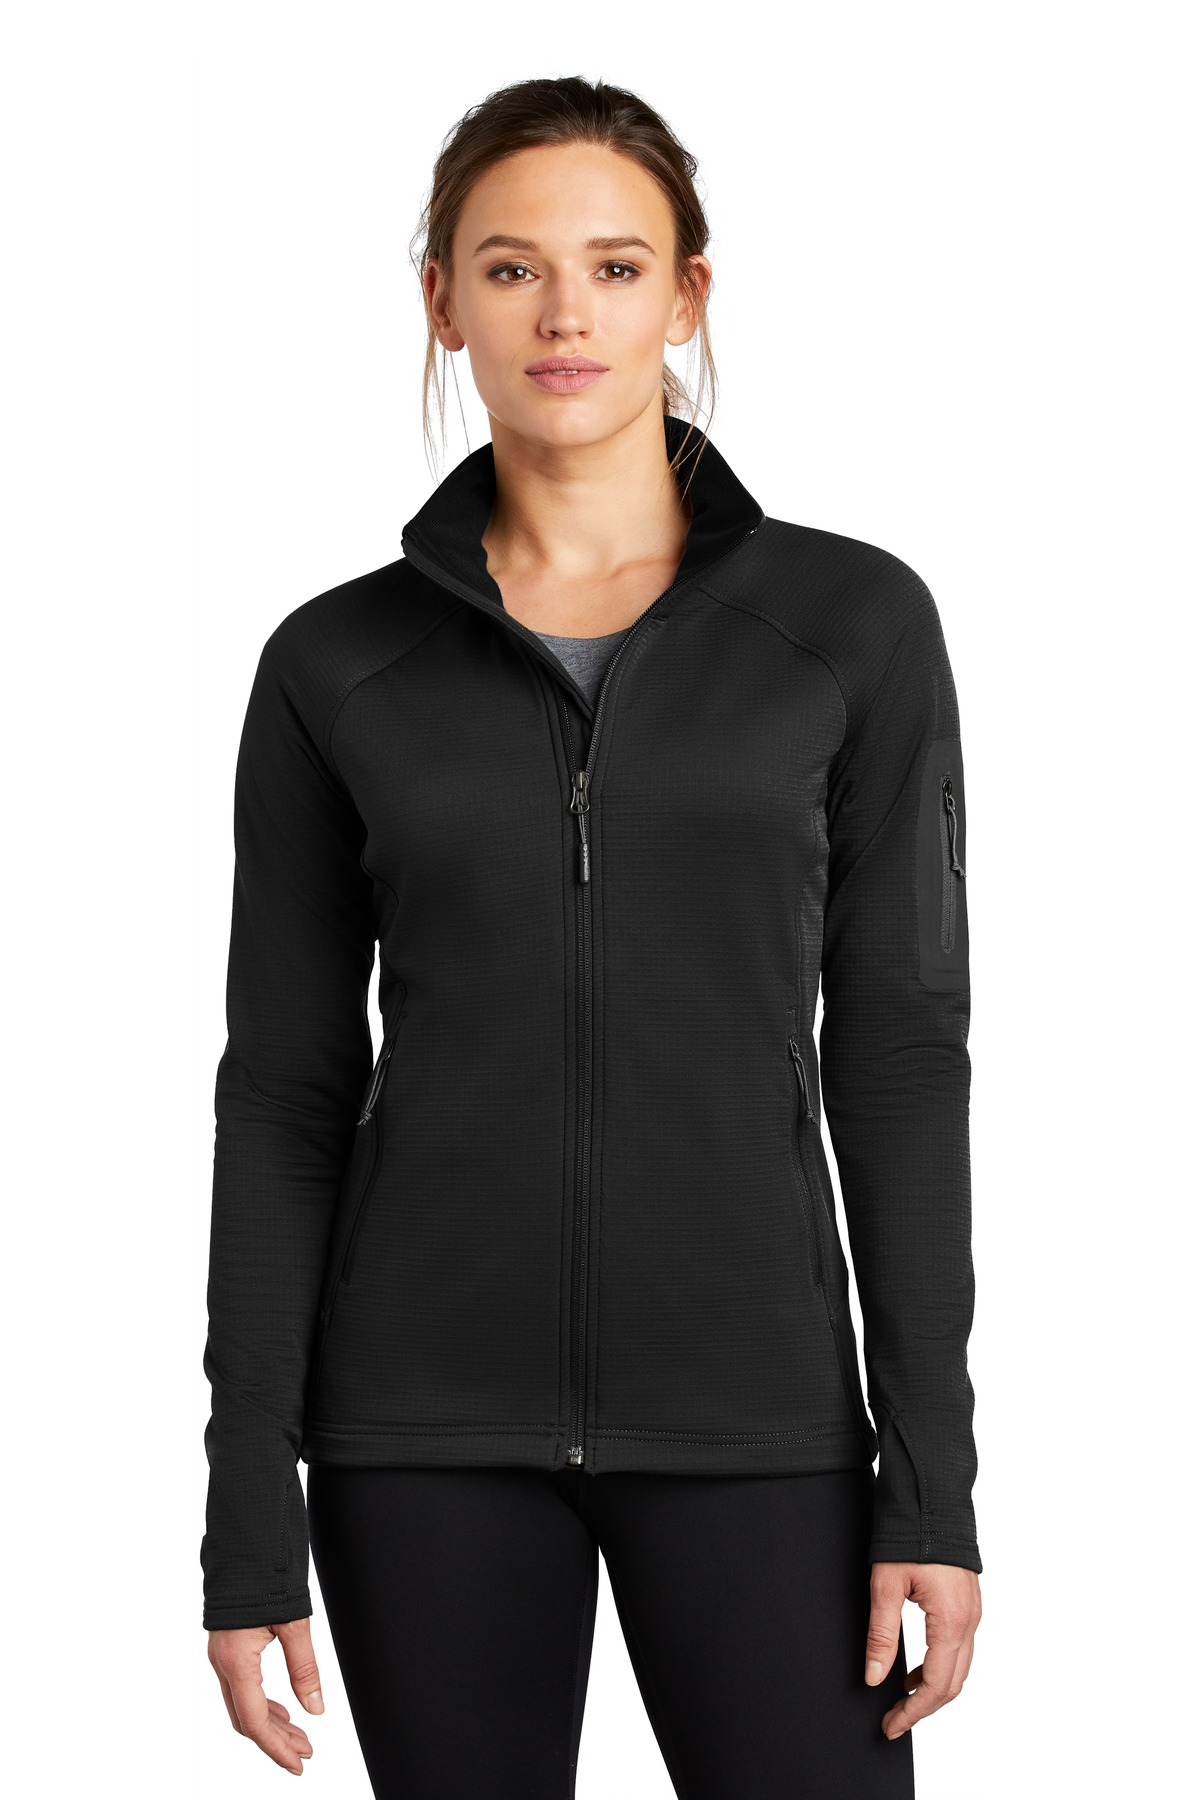 The North Face  ®  Ladies Mountain Peaks Full-Zip Fleece Jacket NF0A47FE - TNF Black